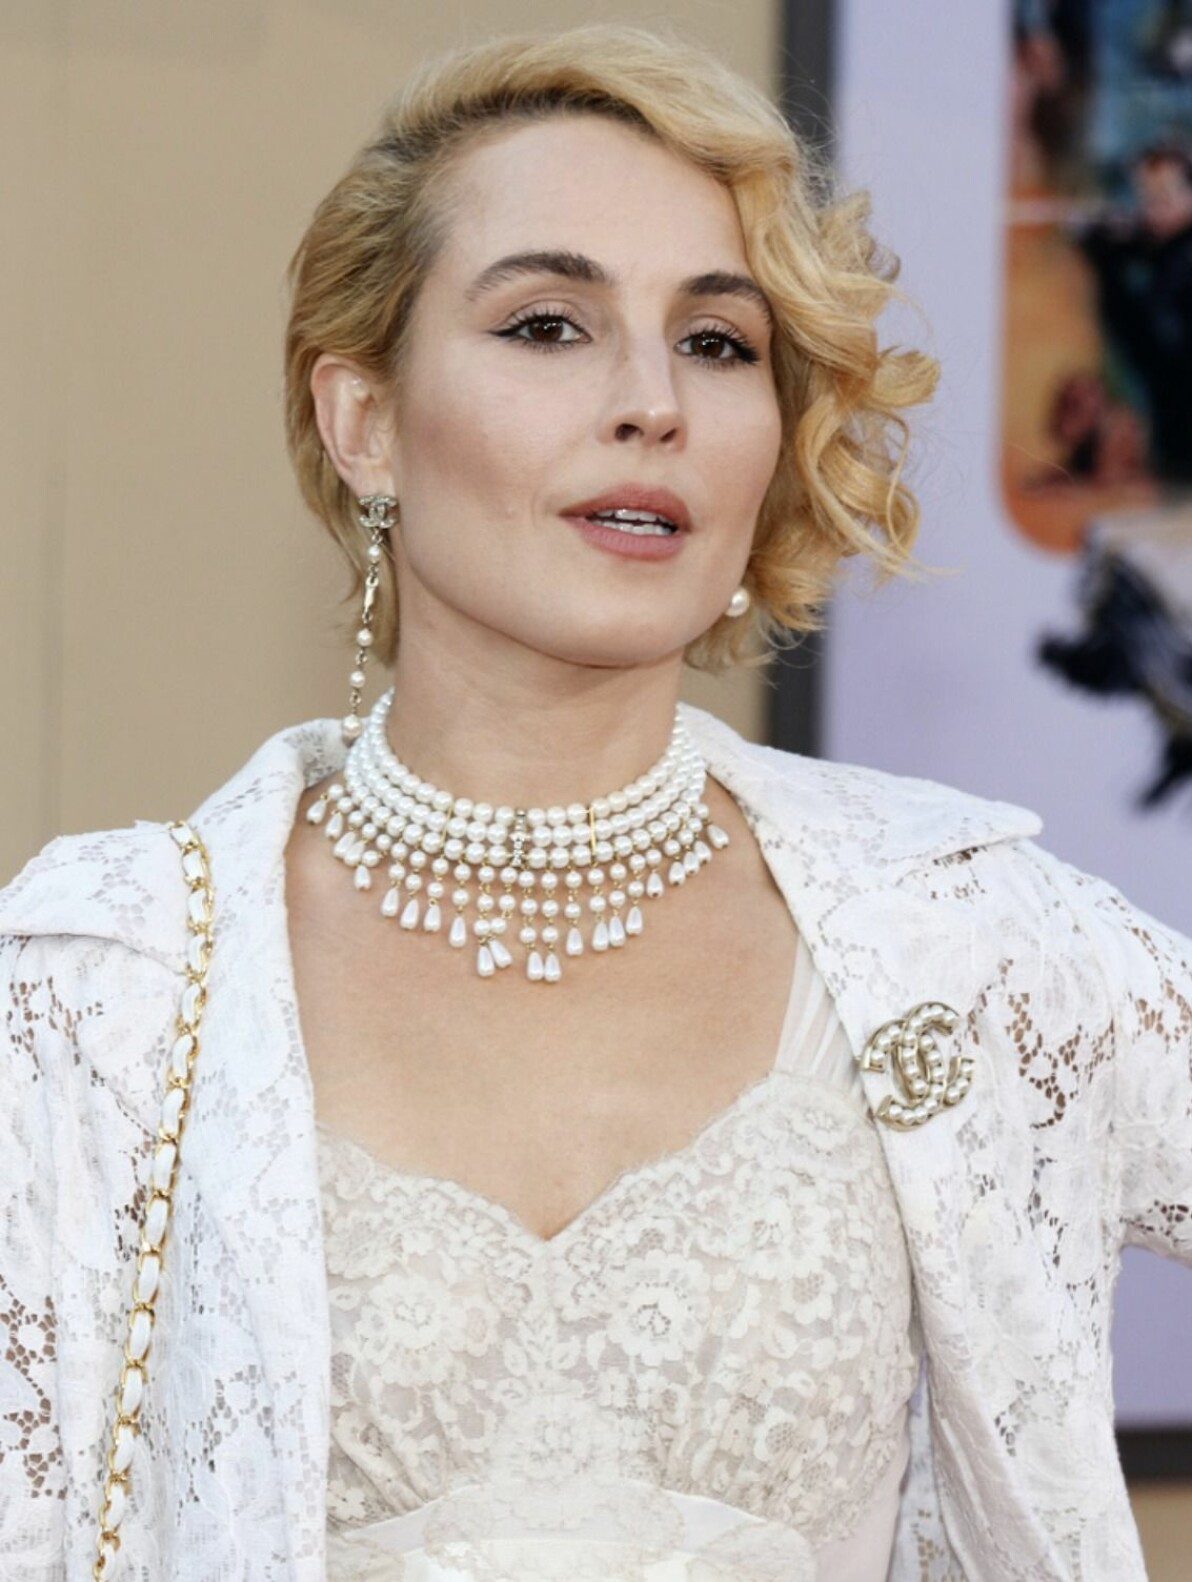 Noomi Rapace blond